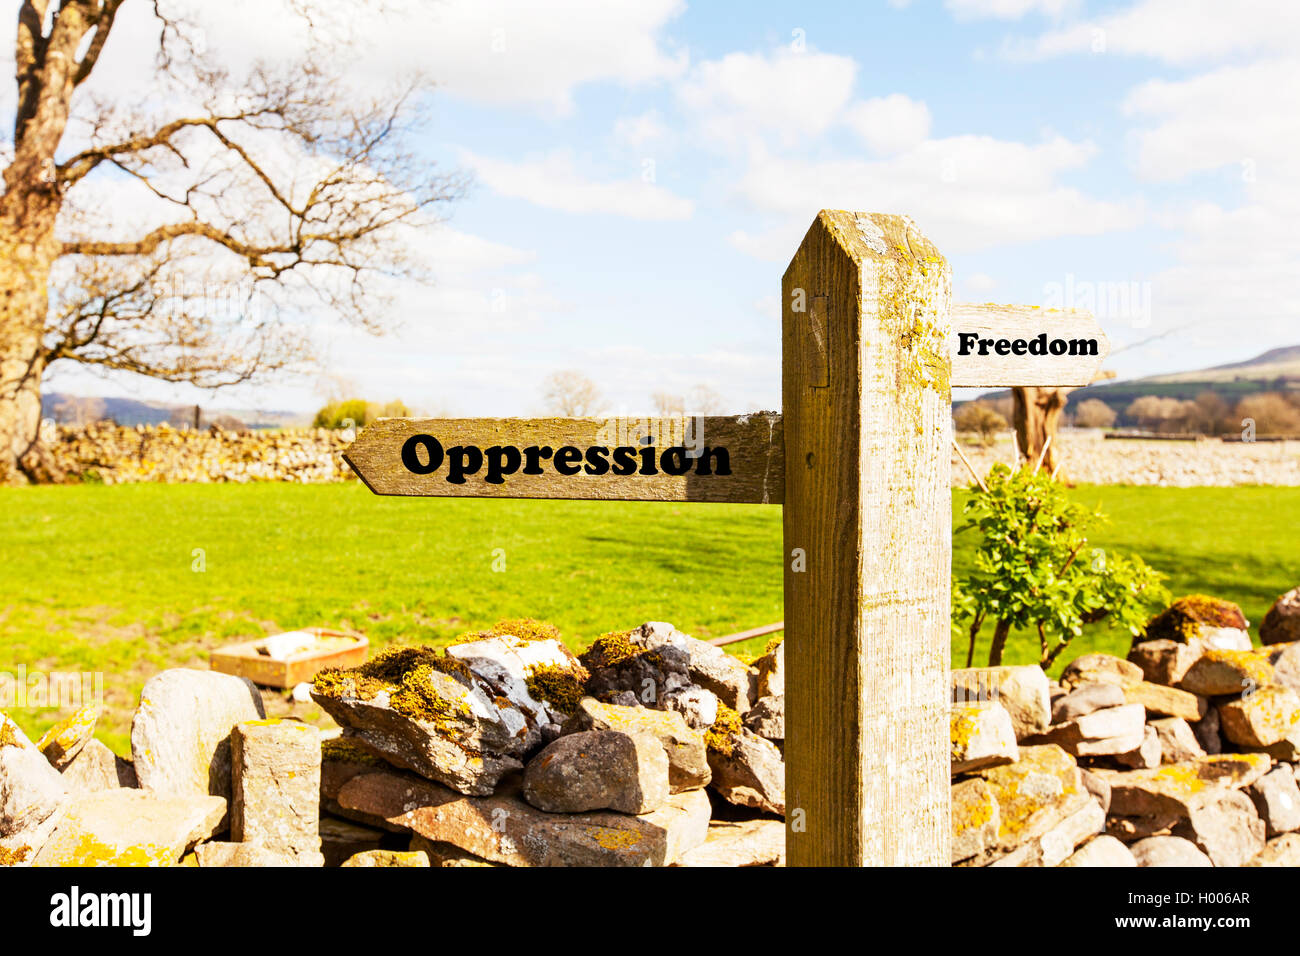 Oppression freedom Oppressed free concept sign choice choose life direction future antonym antonyms concepts signs - Stock Image